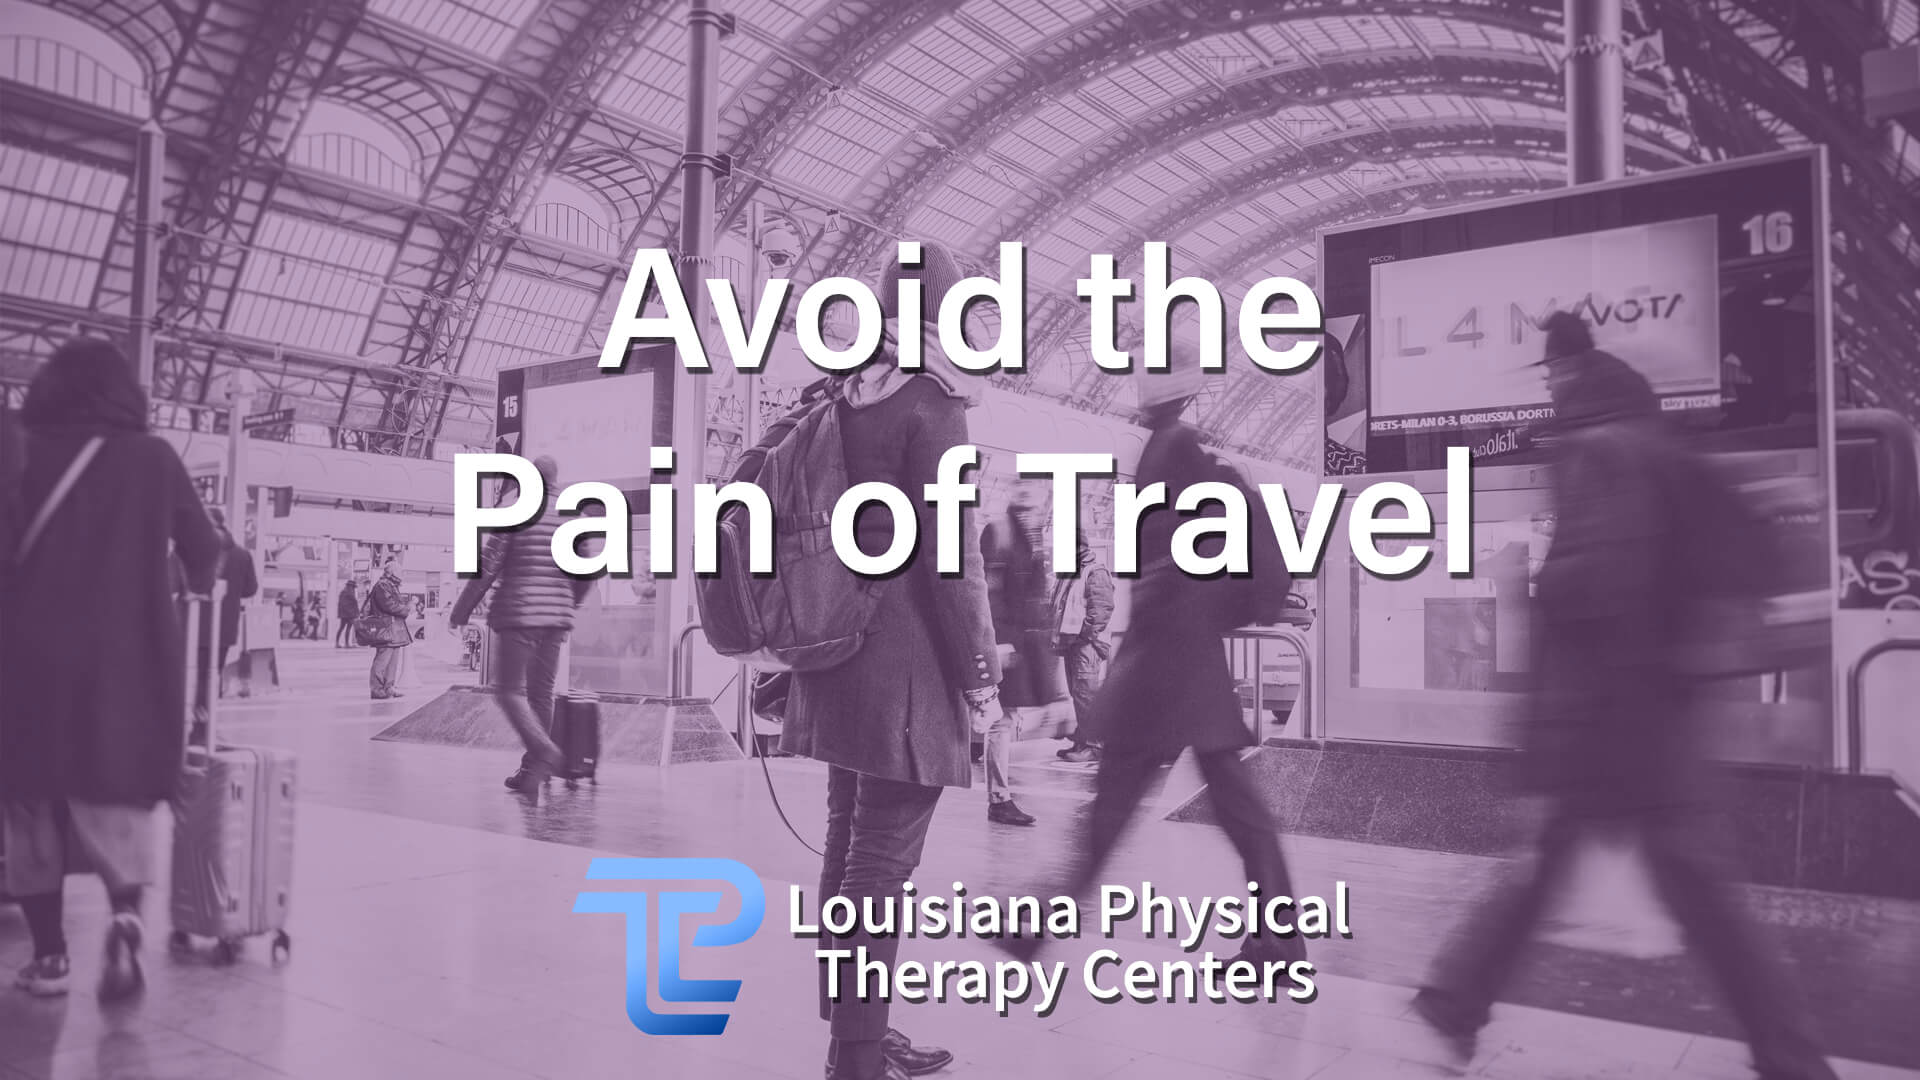 Avoid the Pain of Travel